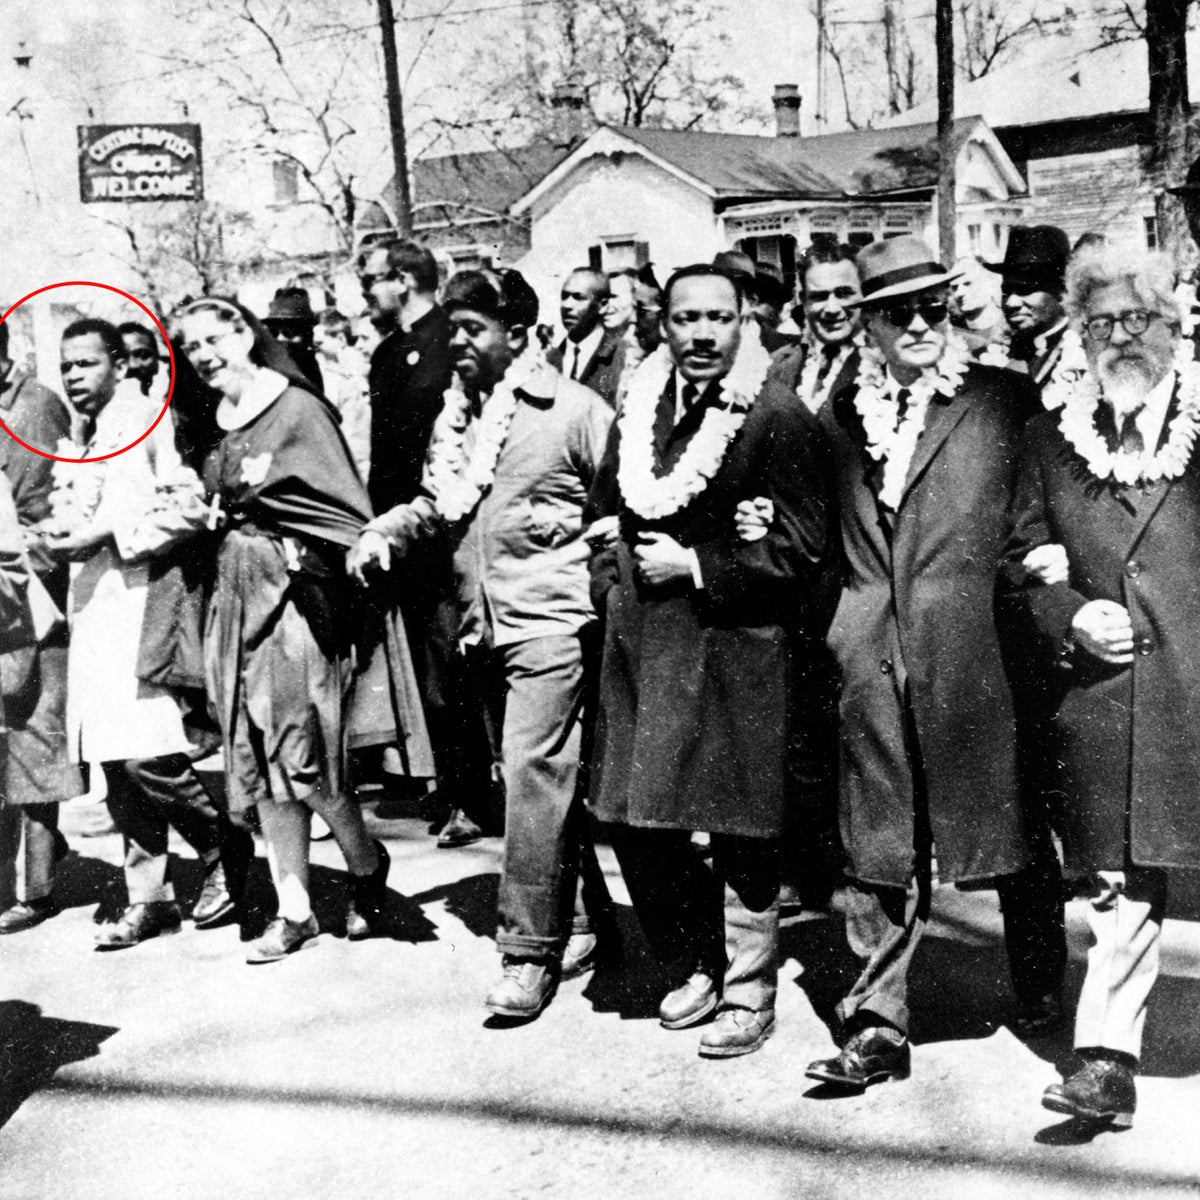 Martin Luther King Jr. marching in Selma, Alabama, alongside Rabbi Abraham Joshua Heschel and other civil rights activists.